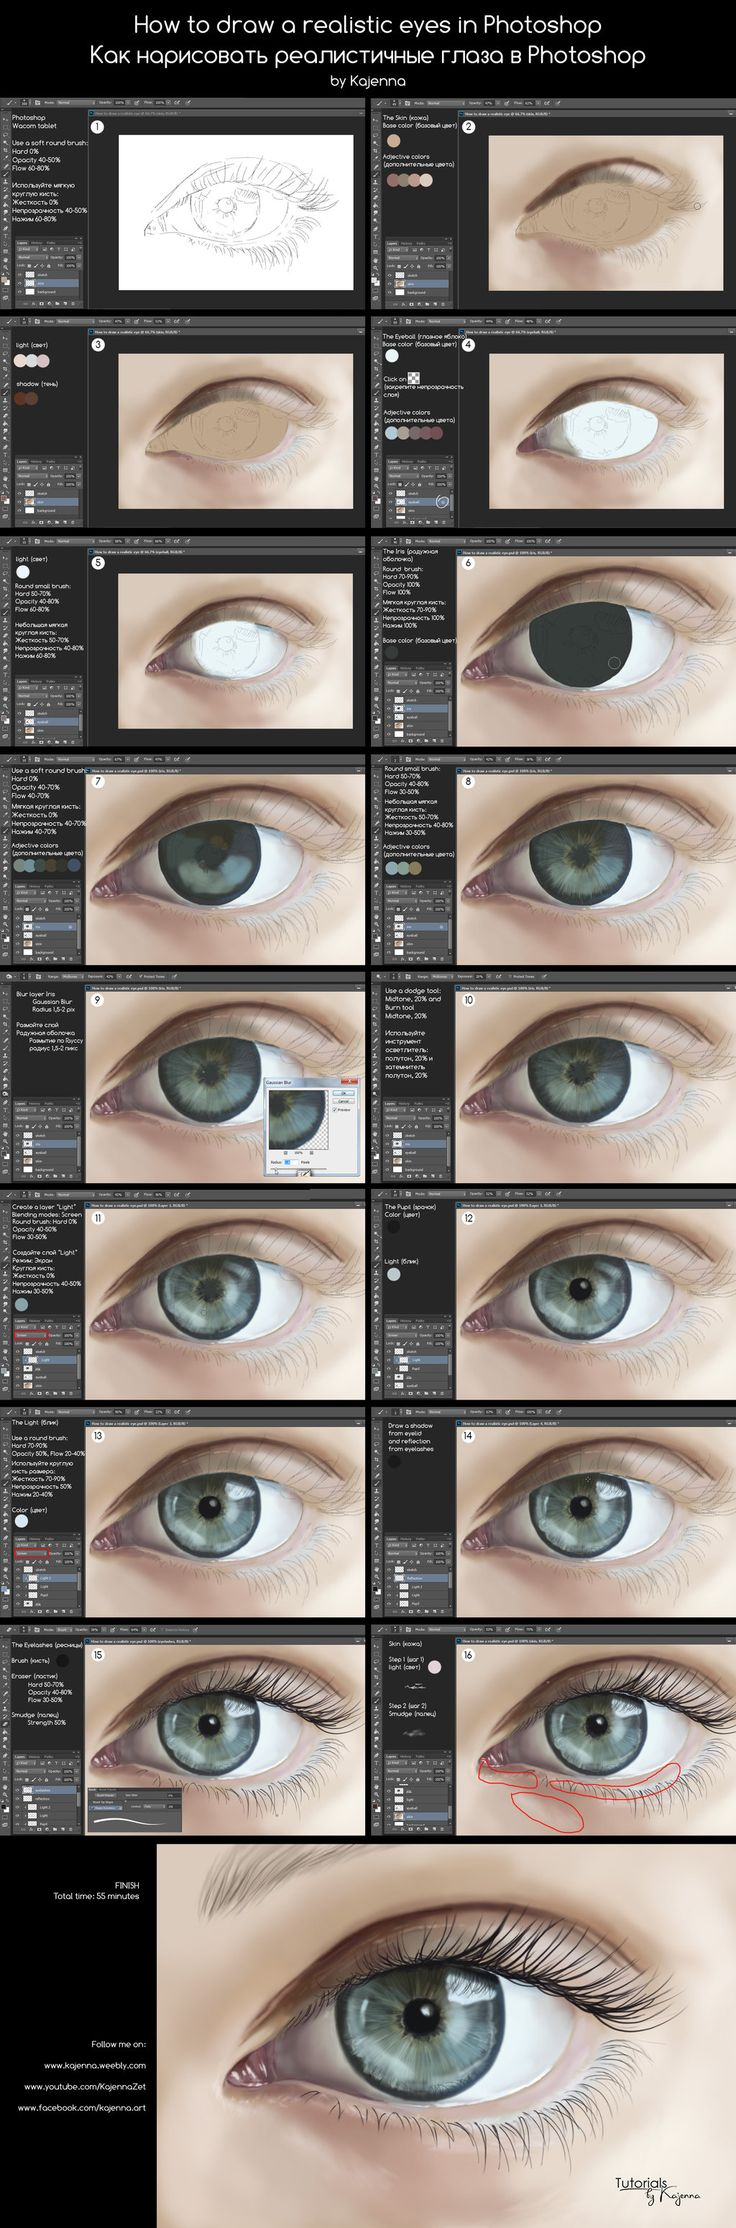 How To Draw A Realistic Eyes In Photoshop By Kajennaiantart On @